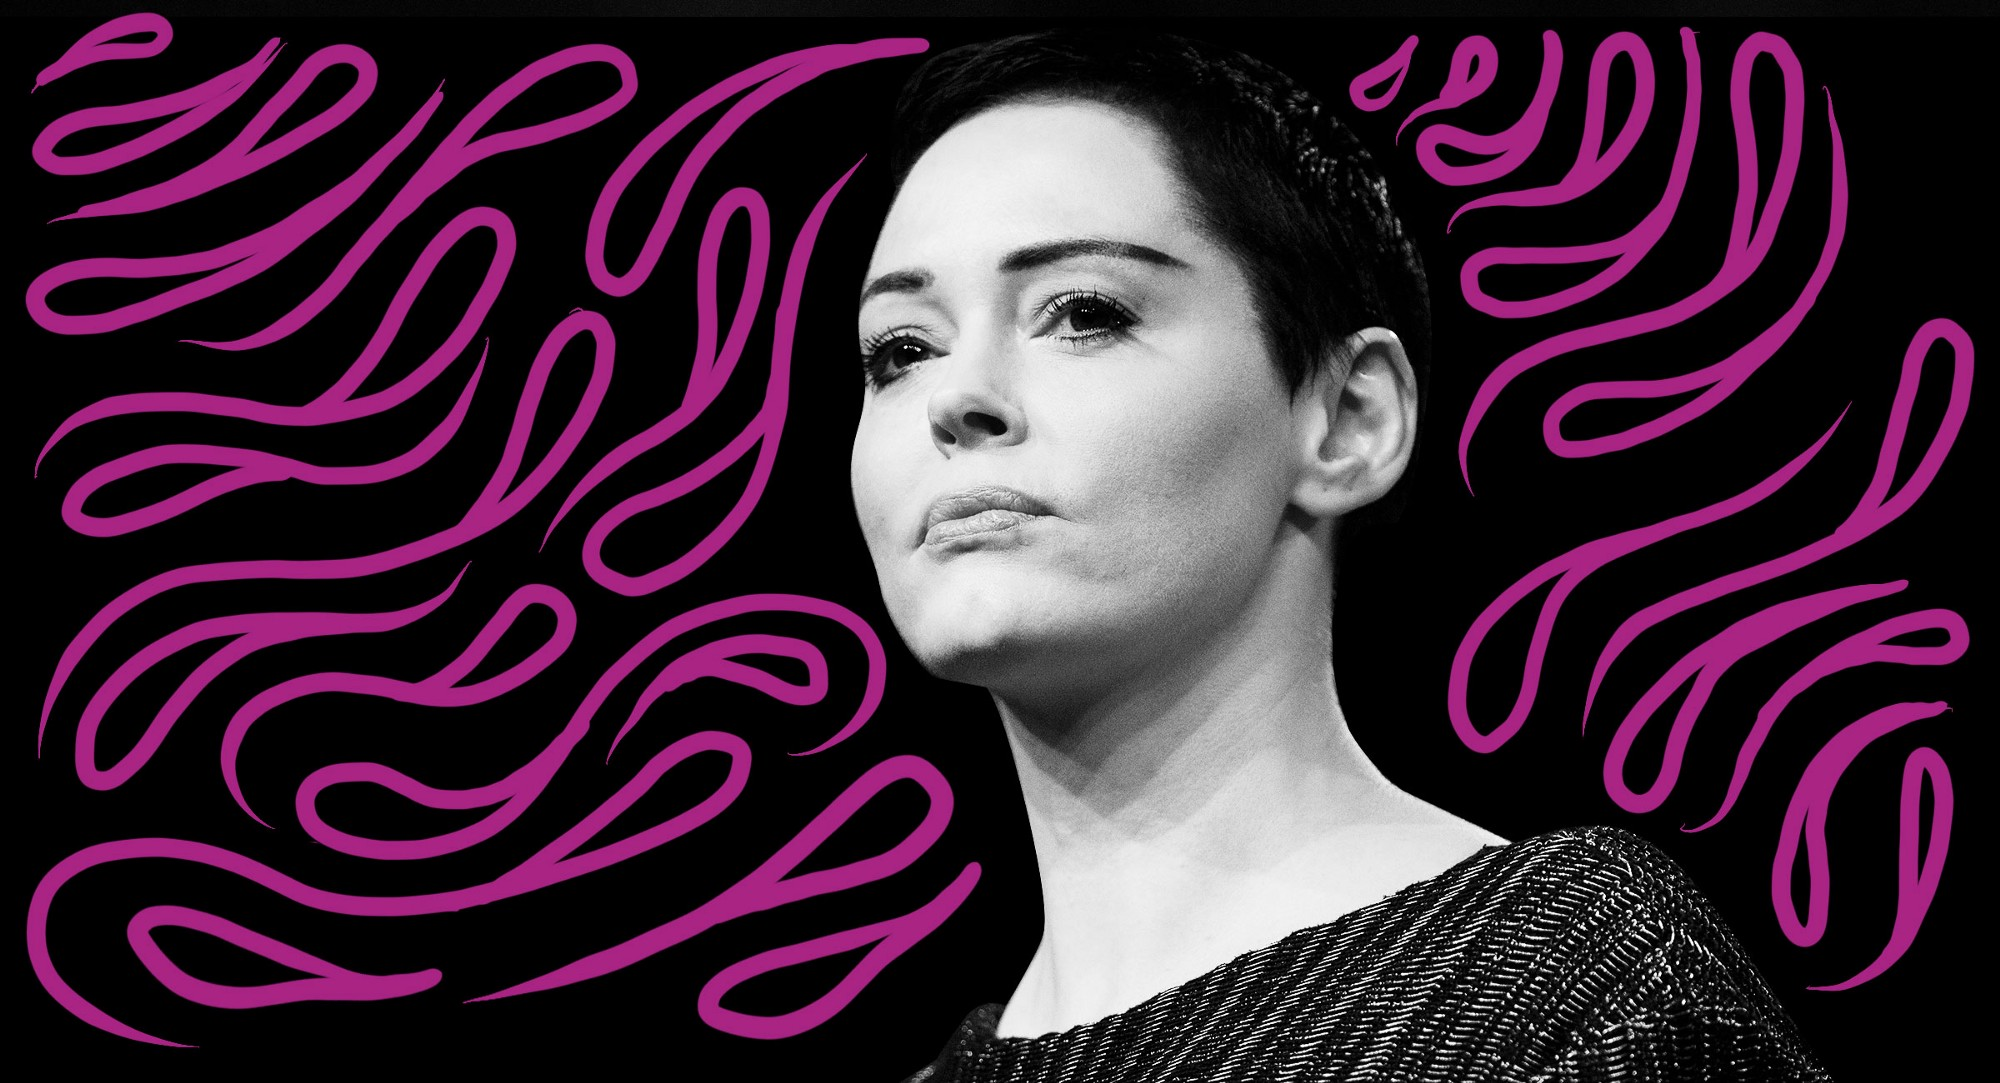 Rose McGowan details Weinstein allegation, cult upbringing in new book